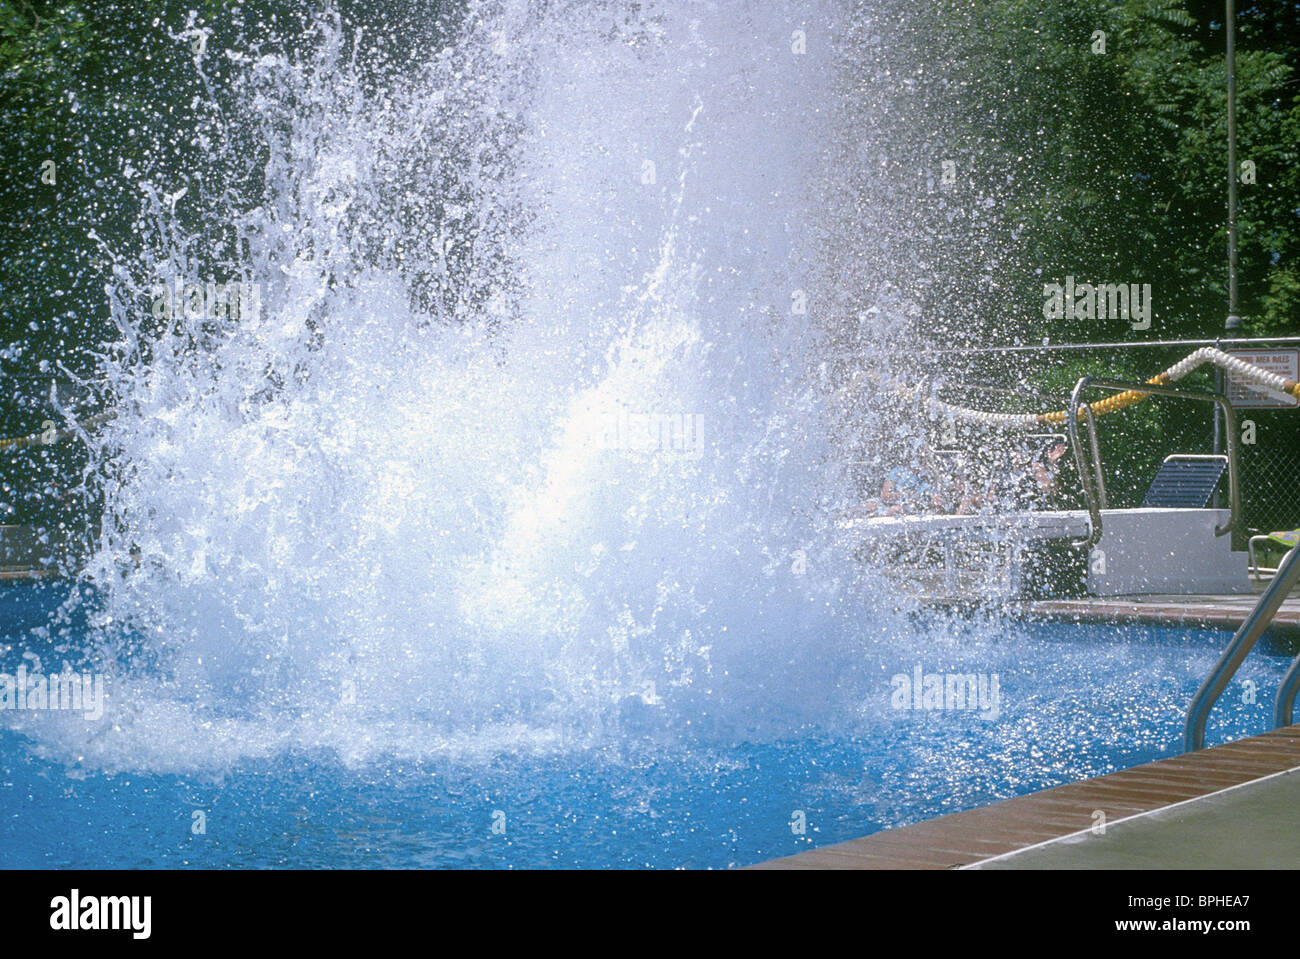 swimming pool splash scene shallow hal 2001 stock photo royalty free image 31117247 alamy